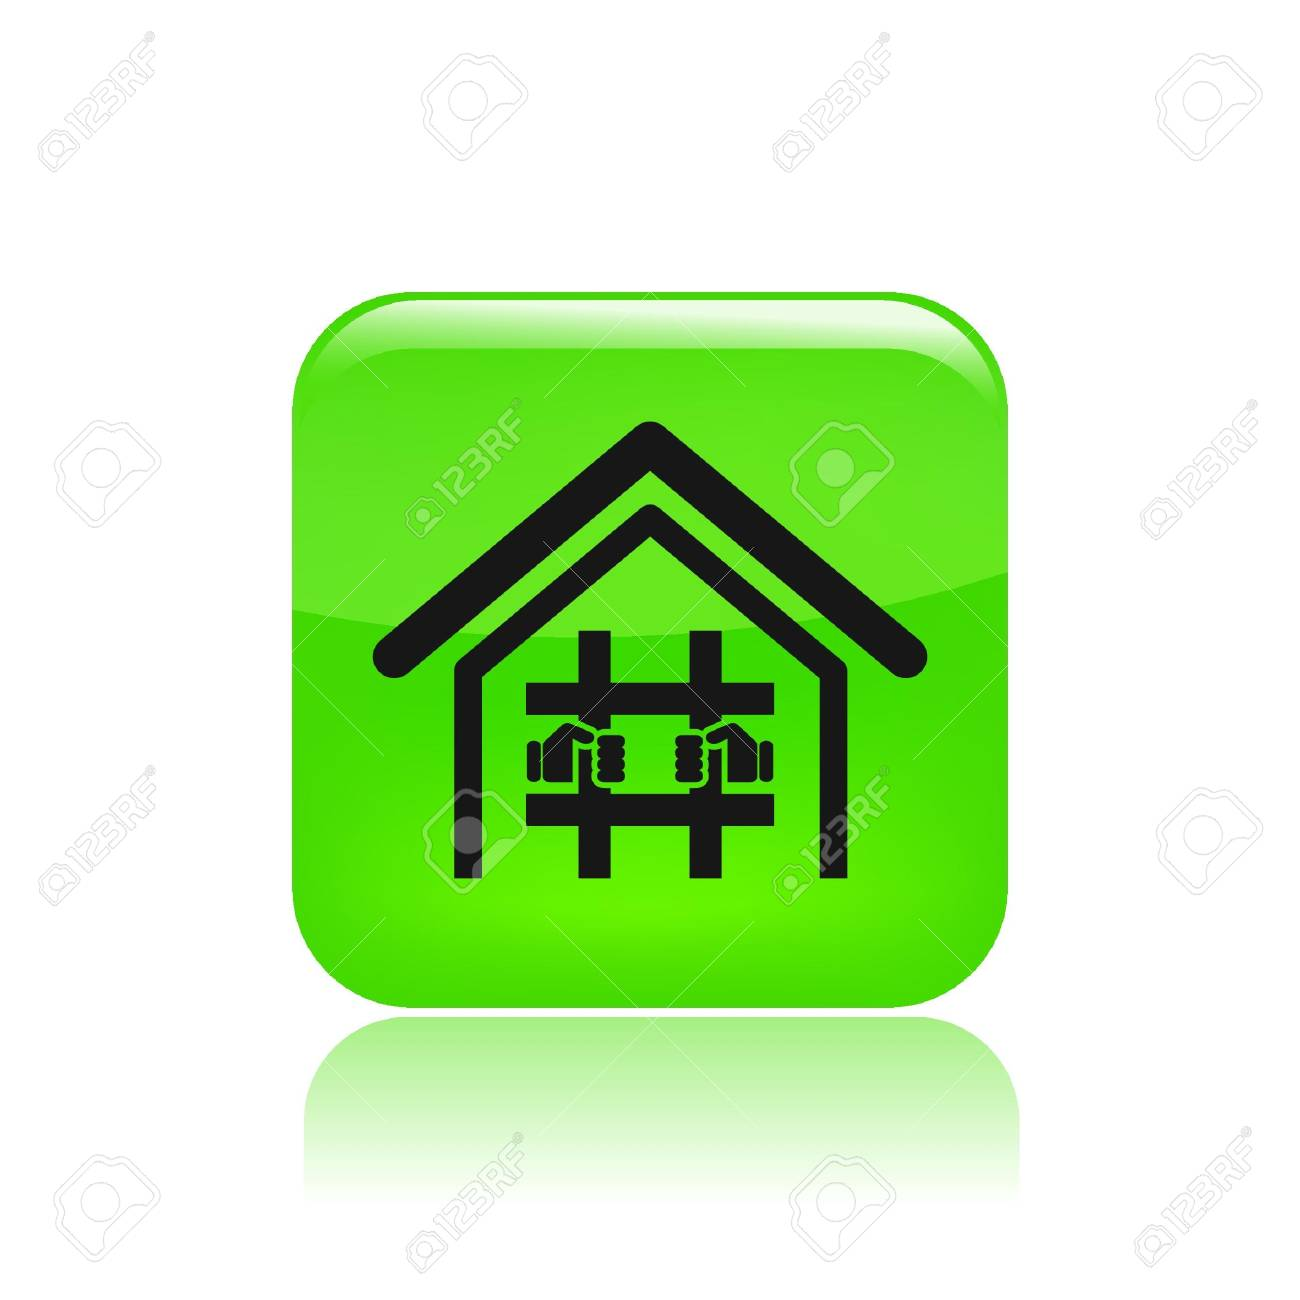 Vector illustration of single isolated prison icon Stock Vector - 12129492